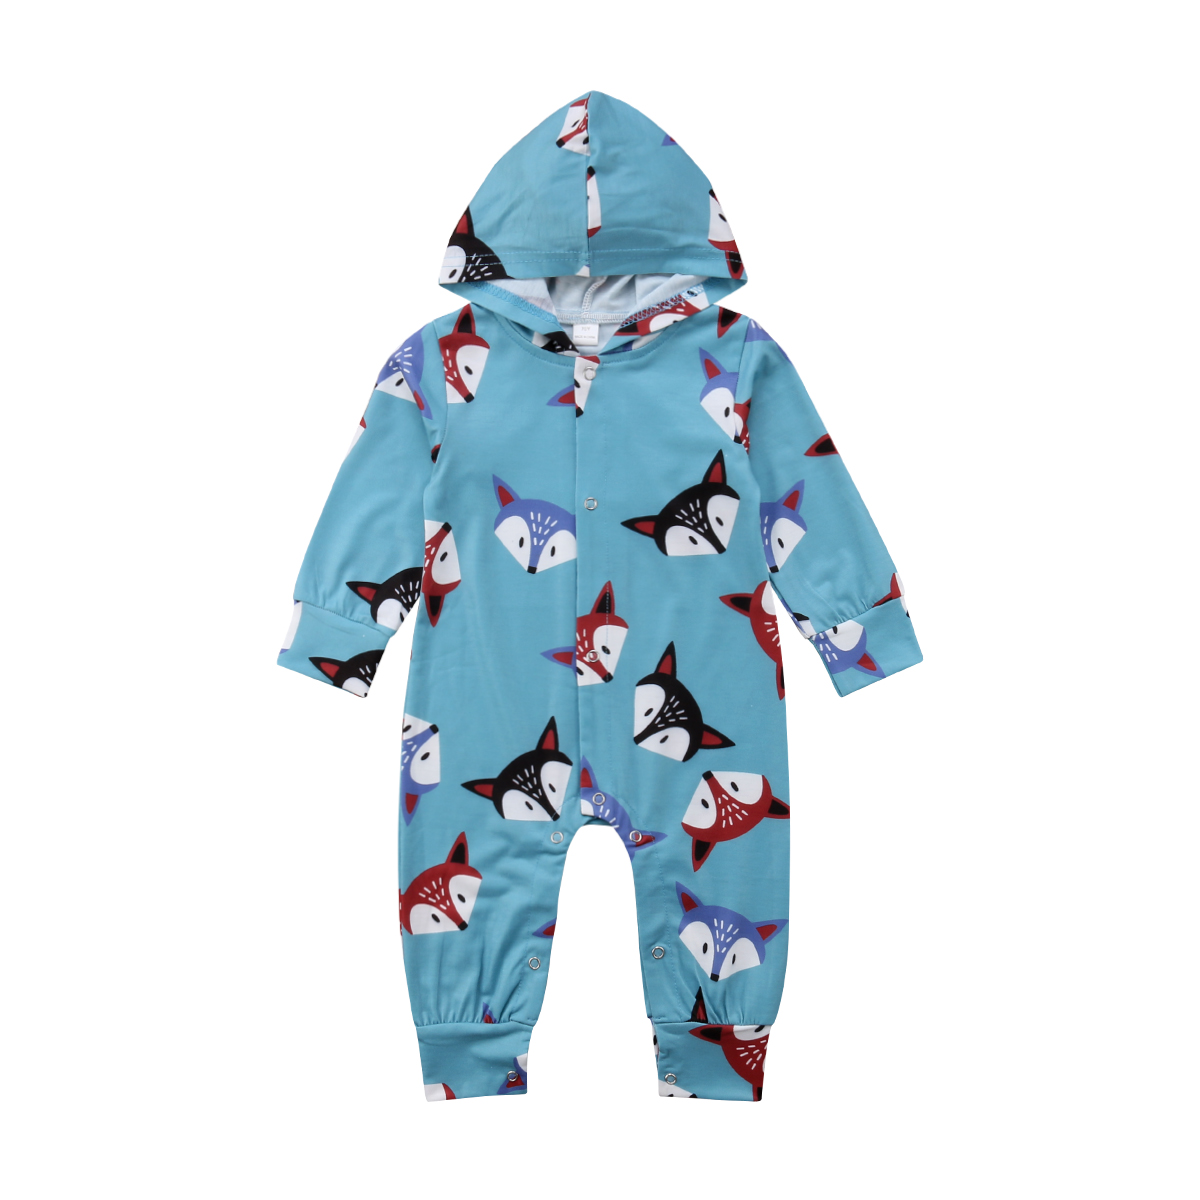 Newborn Baby   Rompers   Suits Baby Girls Boys Long Sleeve Cute Fox Print Hooded Jumpsuits New Winter Fall Infant Outfits Clothes